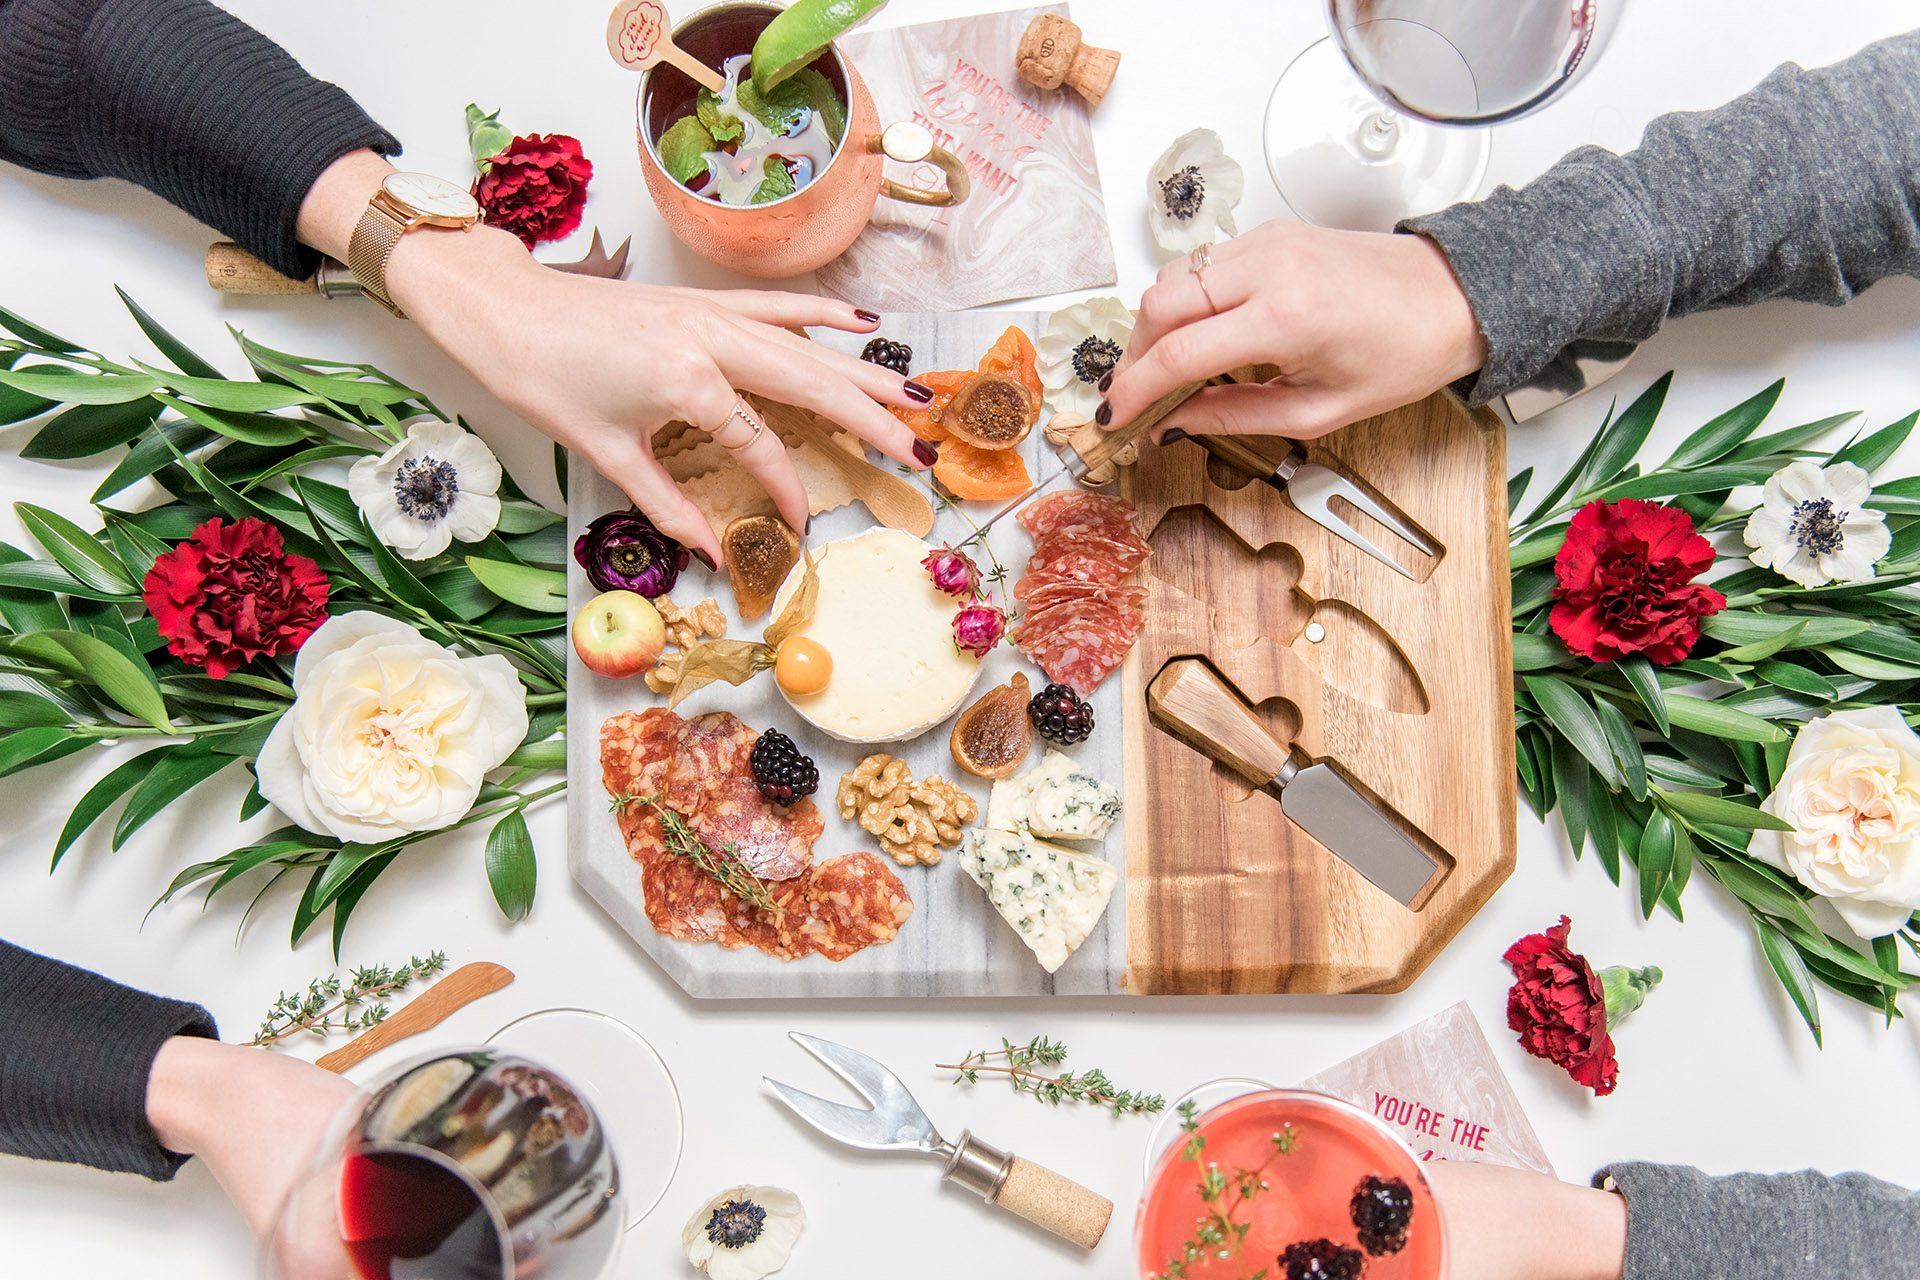 Bird's eye shot of a full cheese and charcuterie board, two people cutting into cheeses